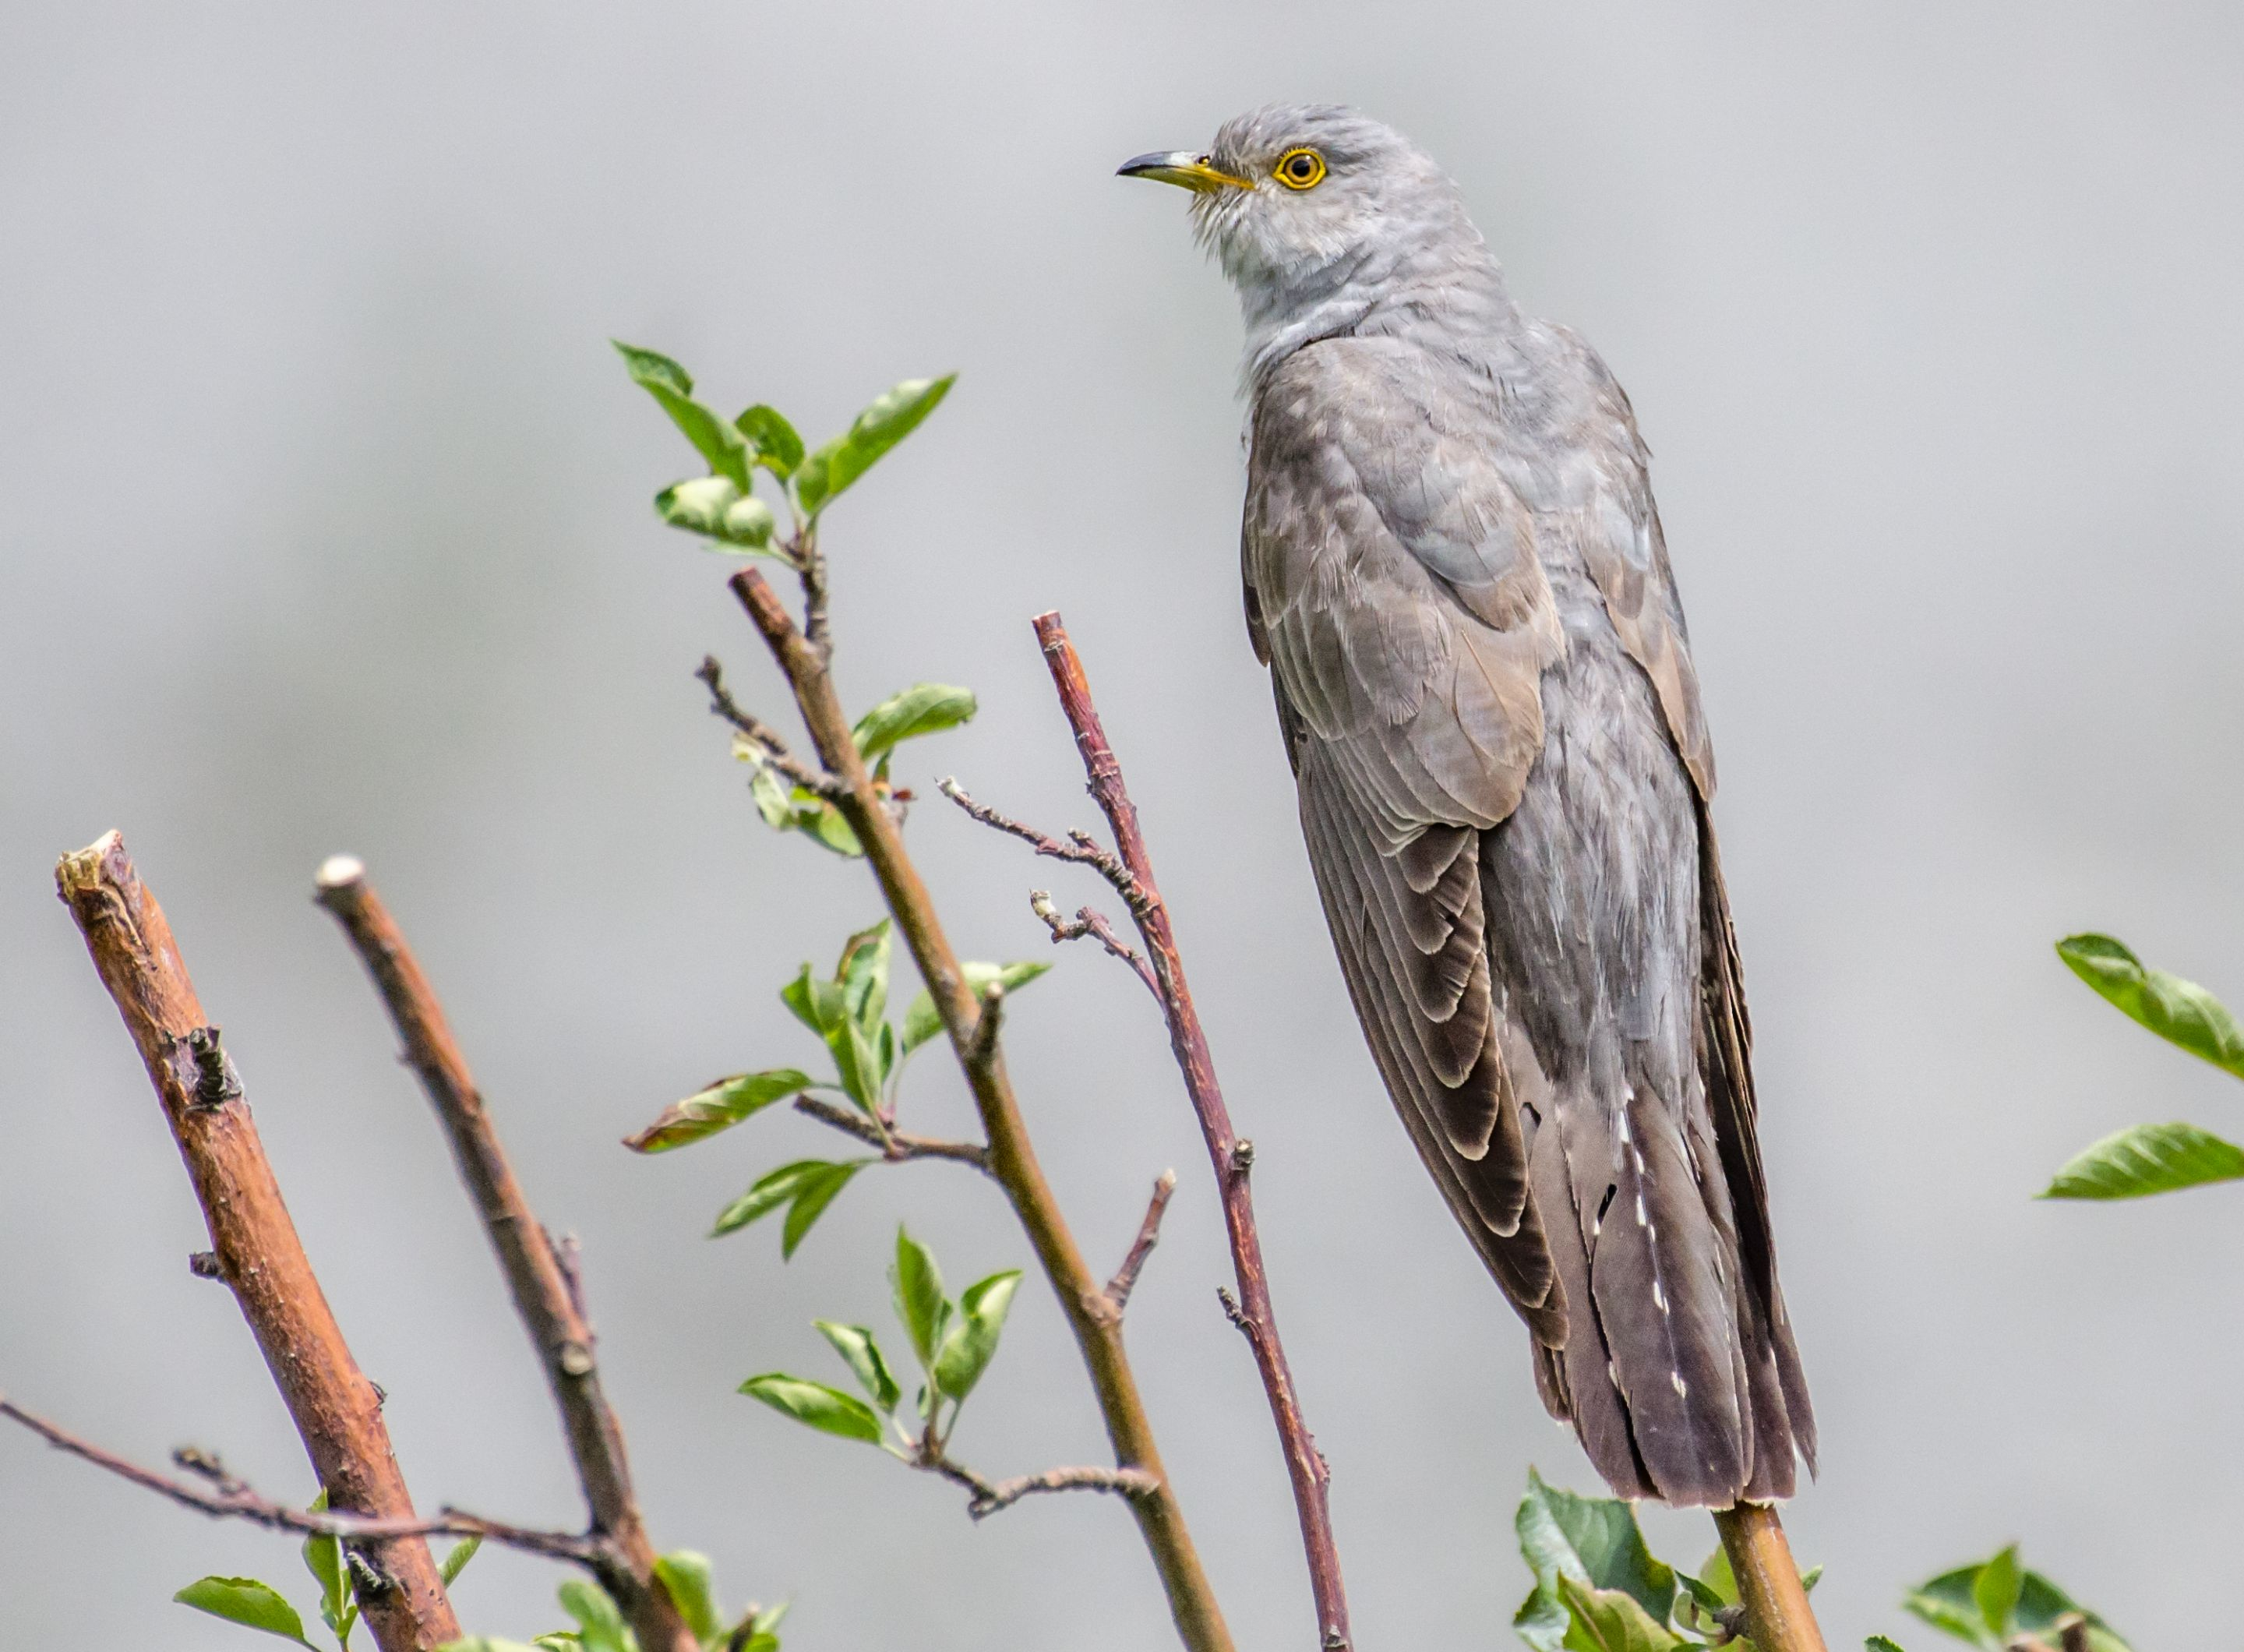 Hive Stock Images - Cuckoos